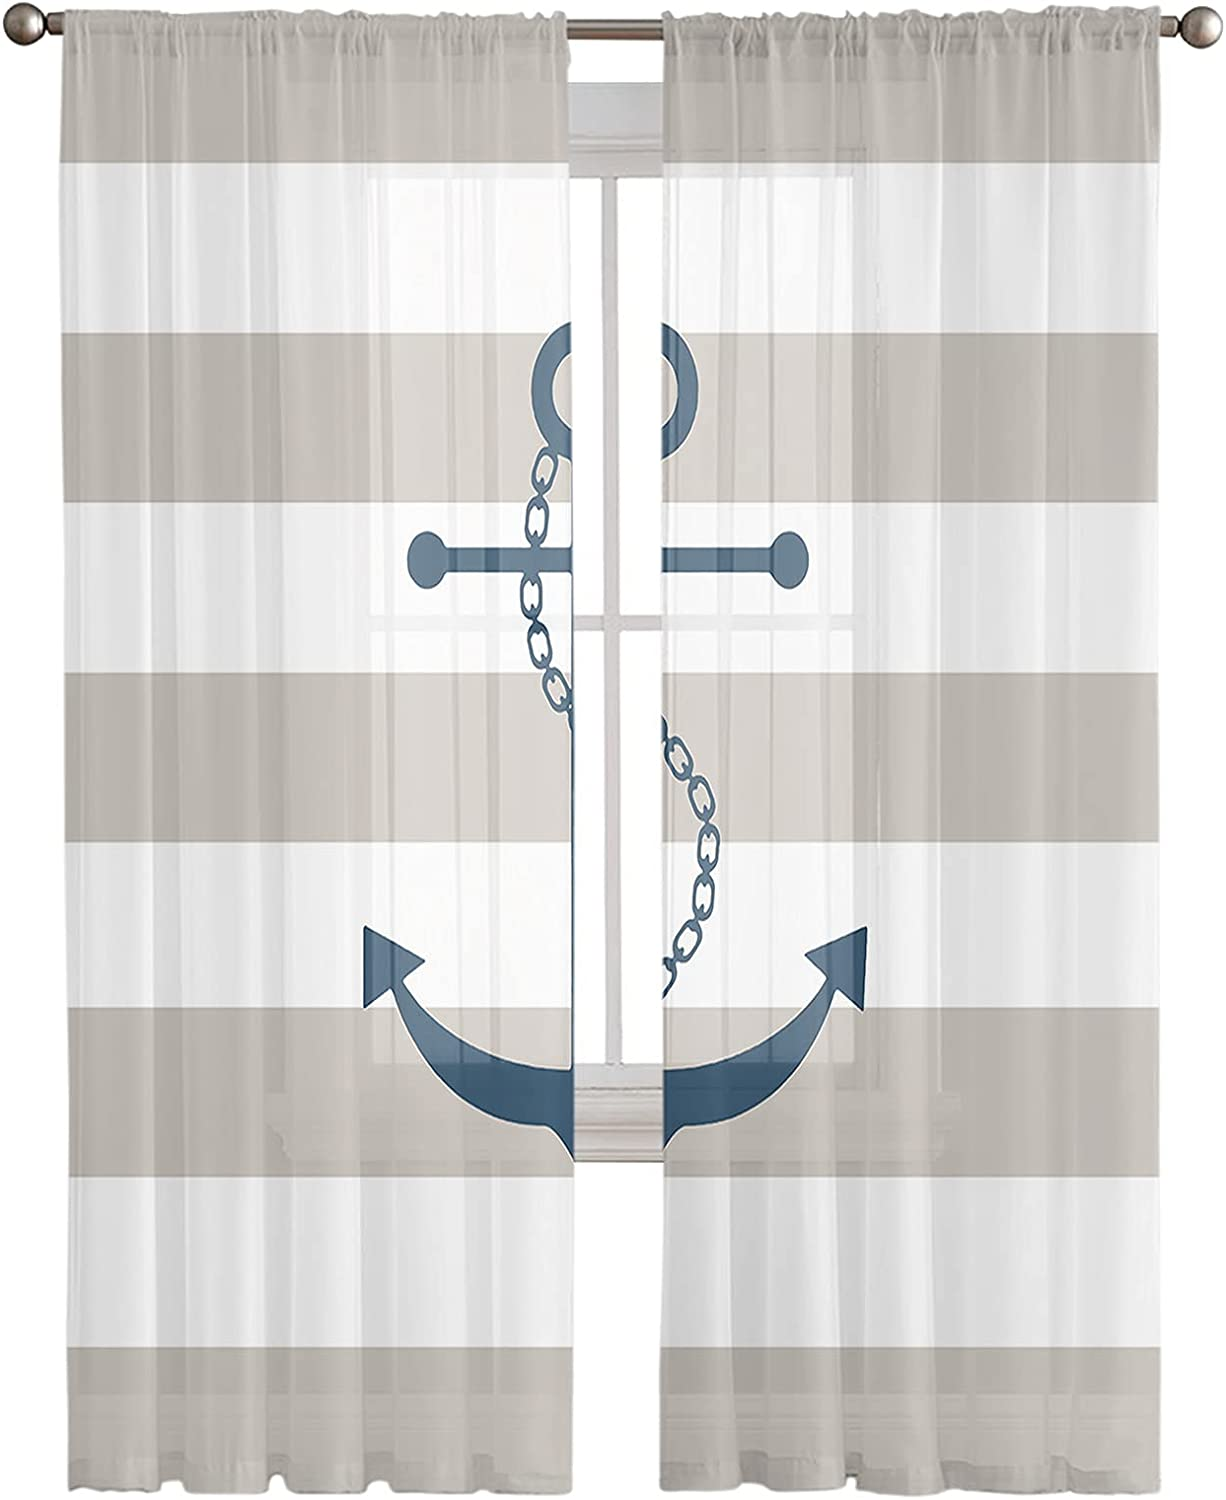 Anchor Sheer Curtains 2 Panels Light Selling and selling Animer and price revision Privacy Filtering Curtain